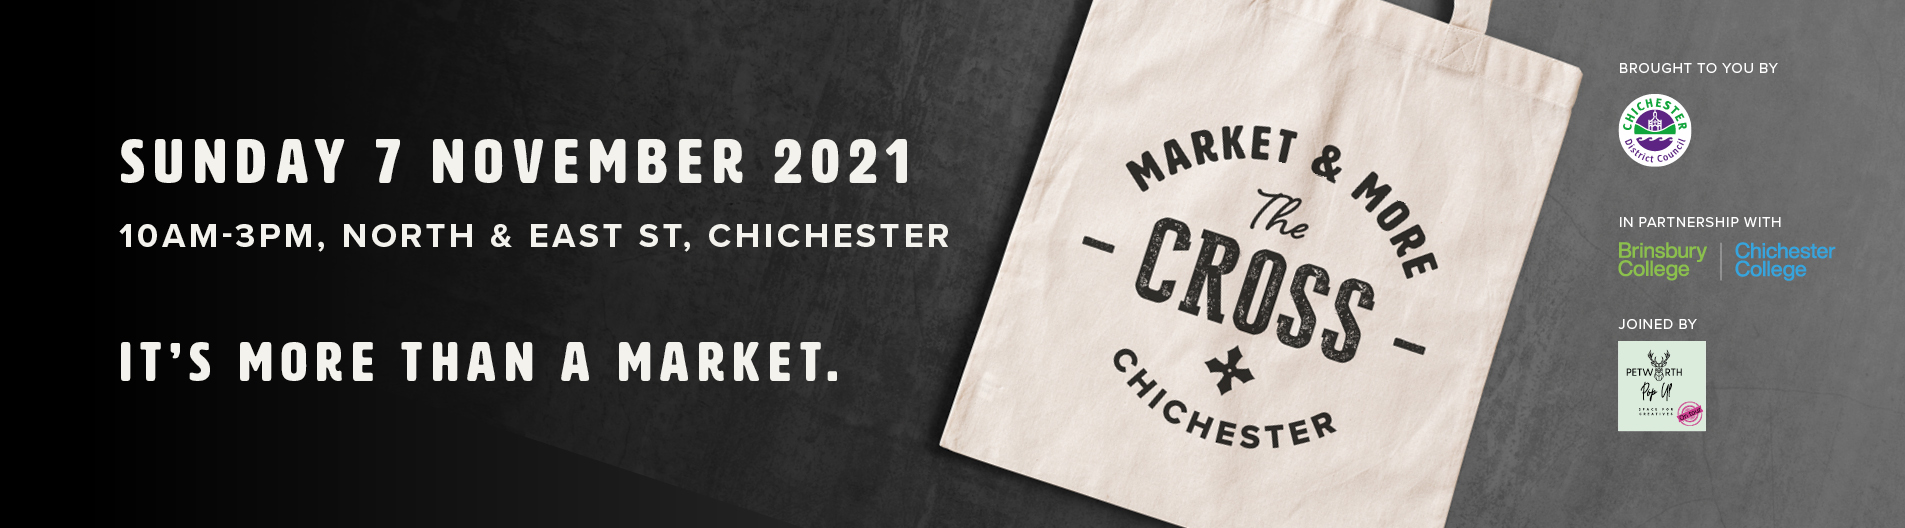 A new street market showcasing the best products from across the district is coming to Chichester city centre on Sunday 7 November 2021.